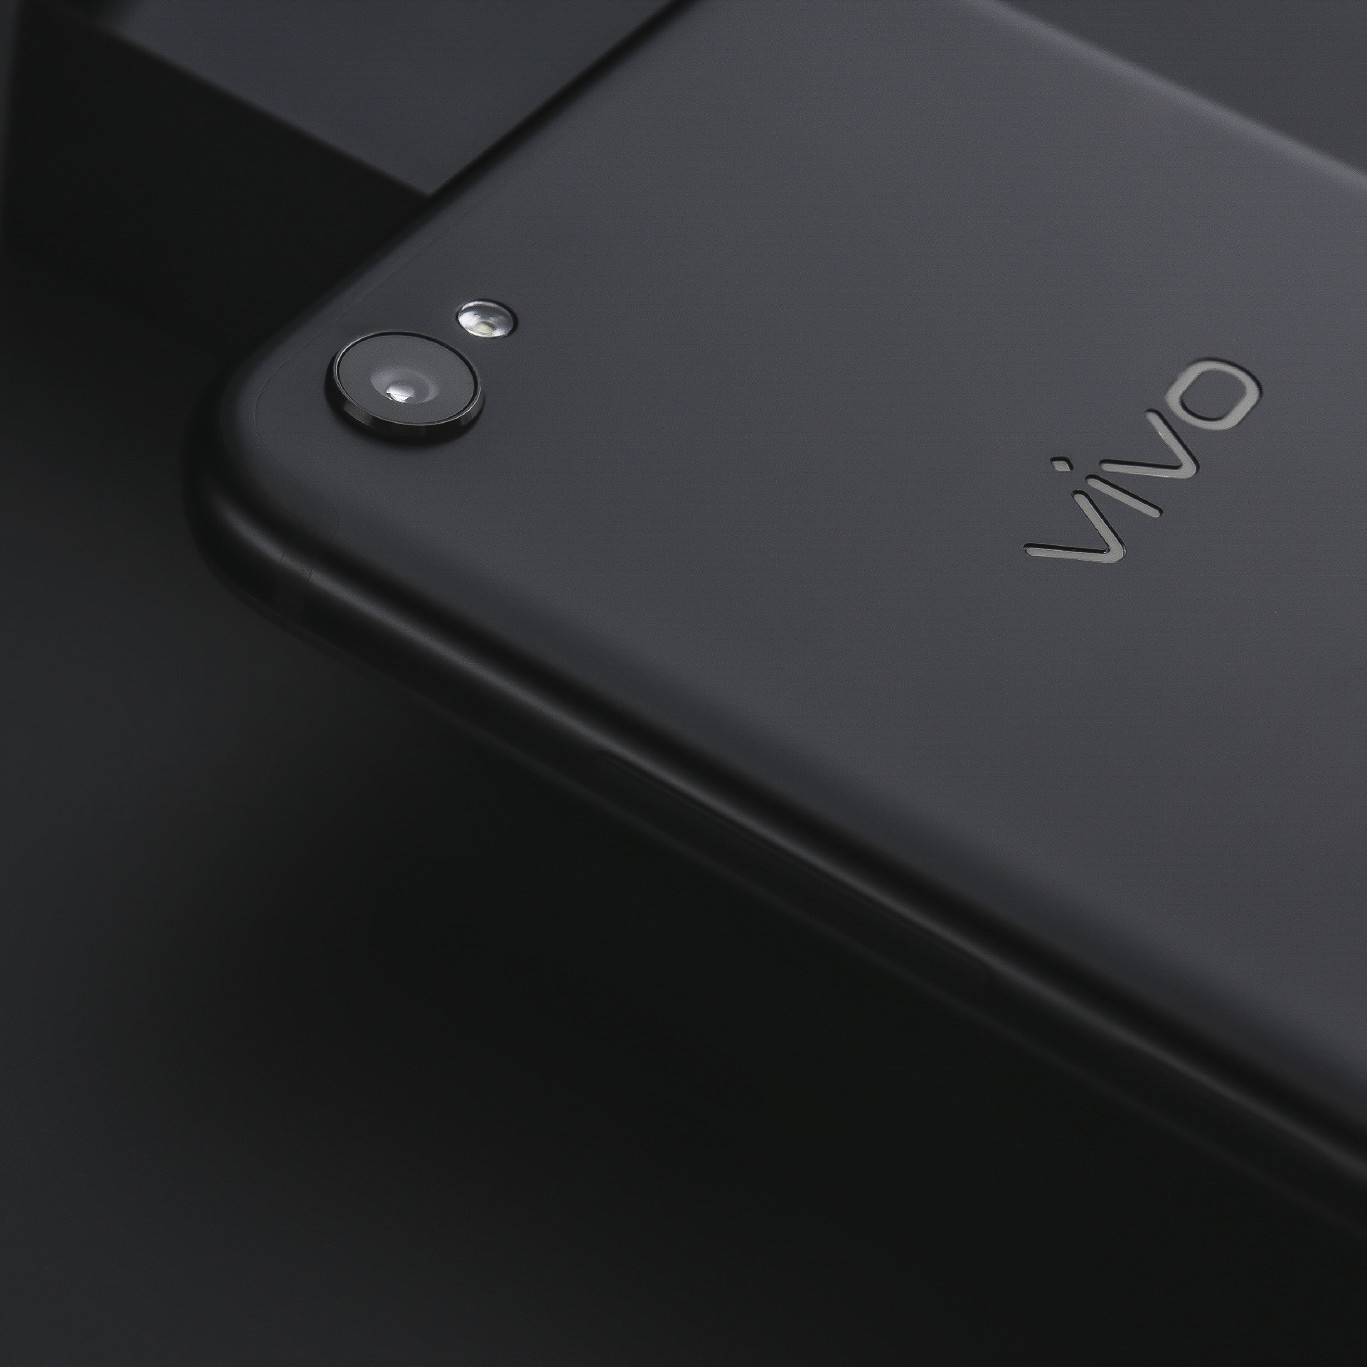 Vivo V5 Plus IPL Edition launched ahead of IPL 2017